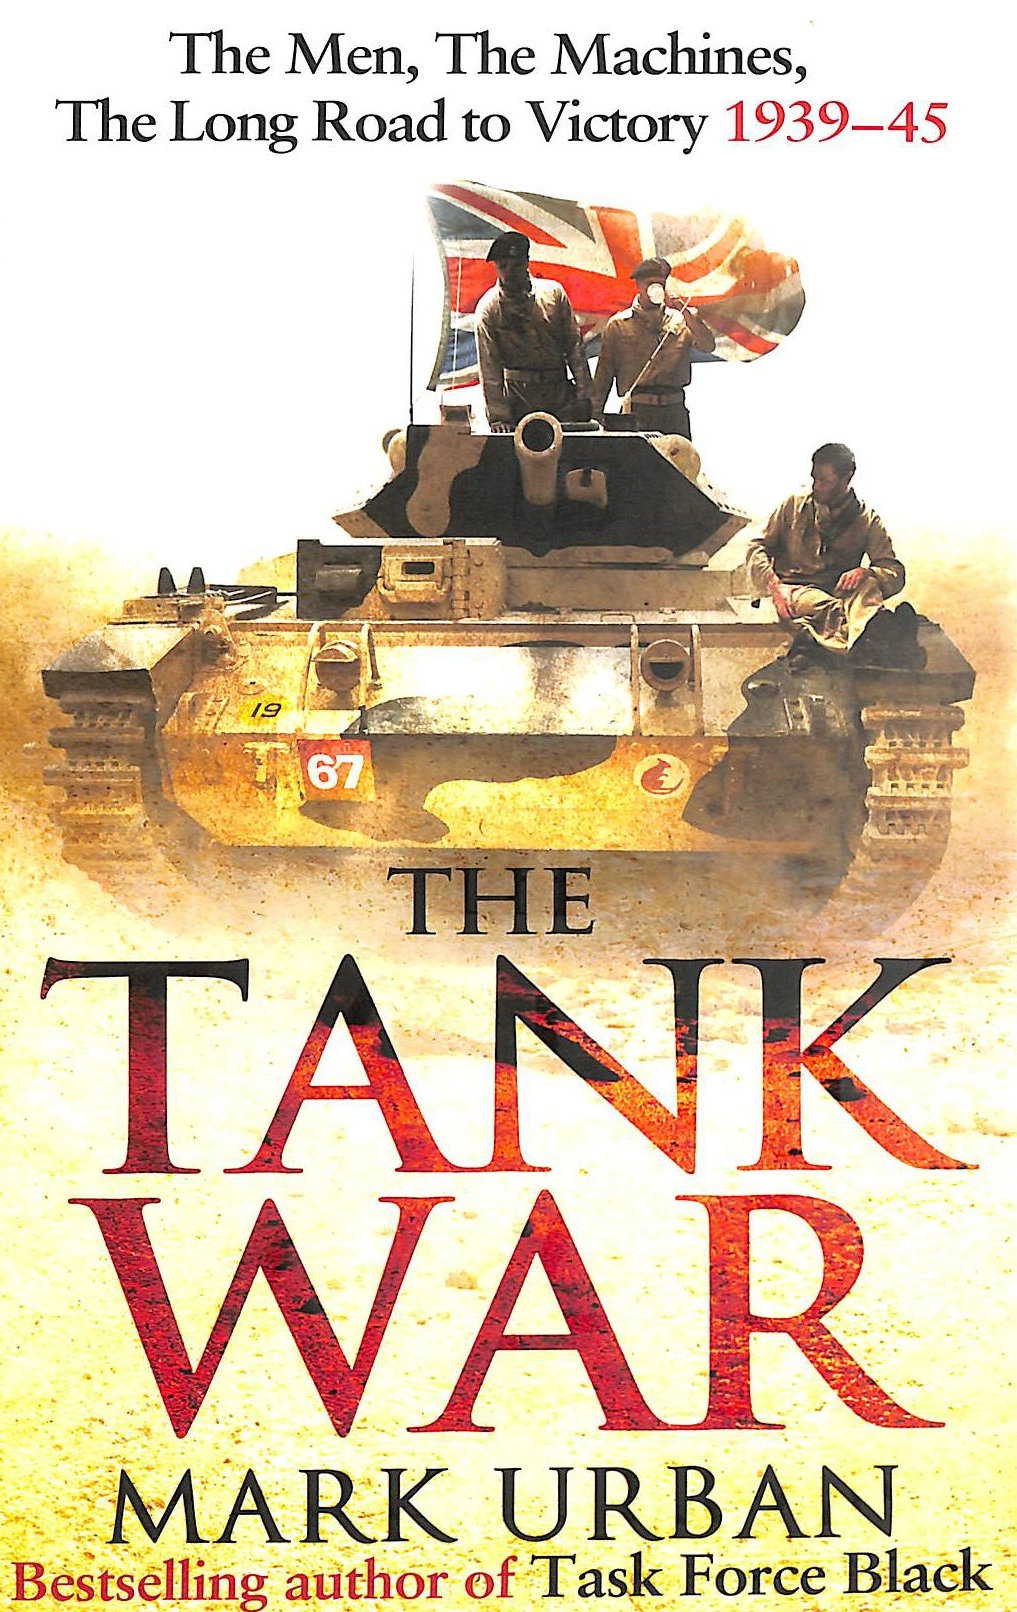 URBAN, MARK - The Tank War: The Men, the Machines and the Long Road to Victory